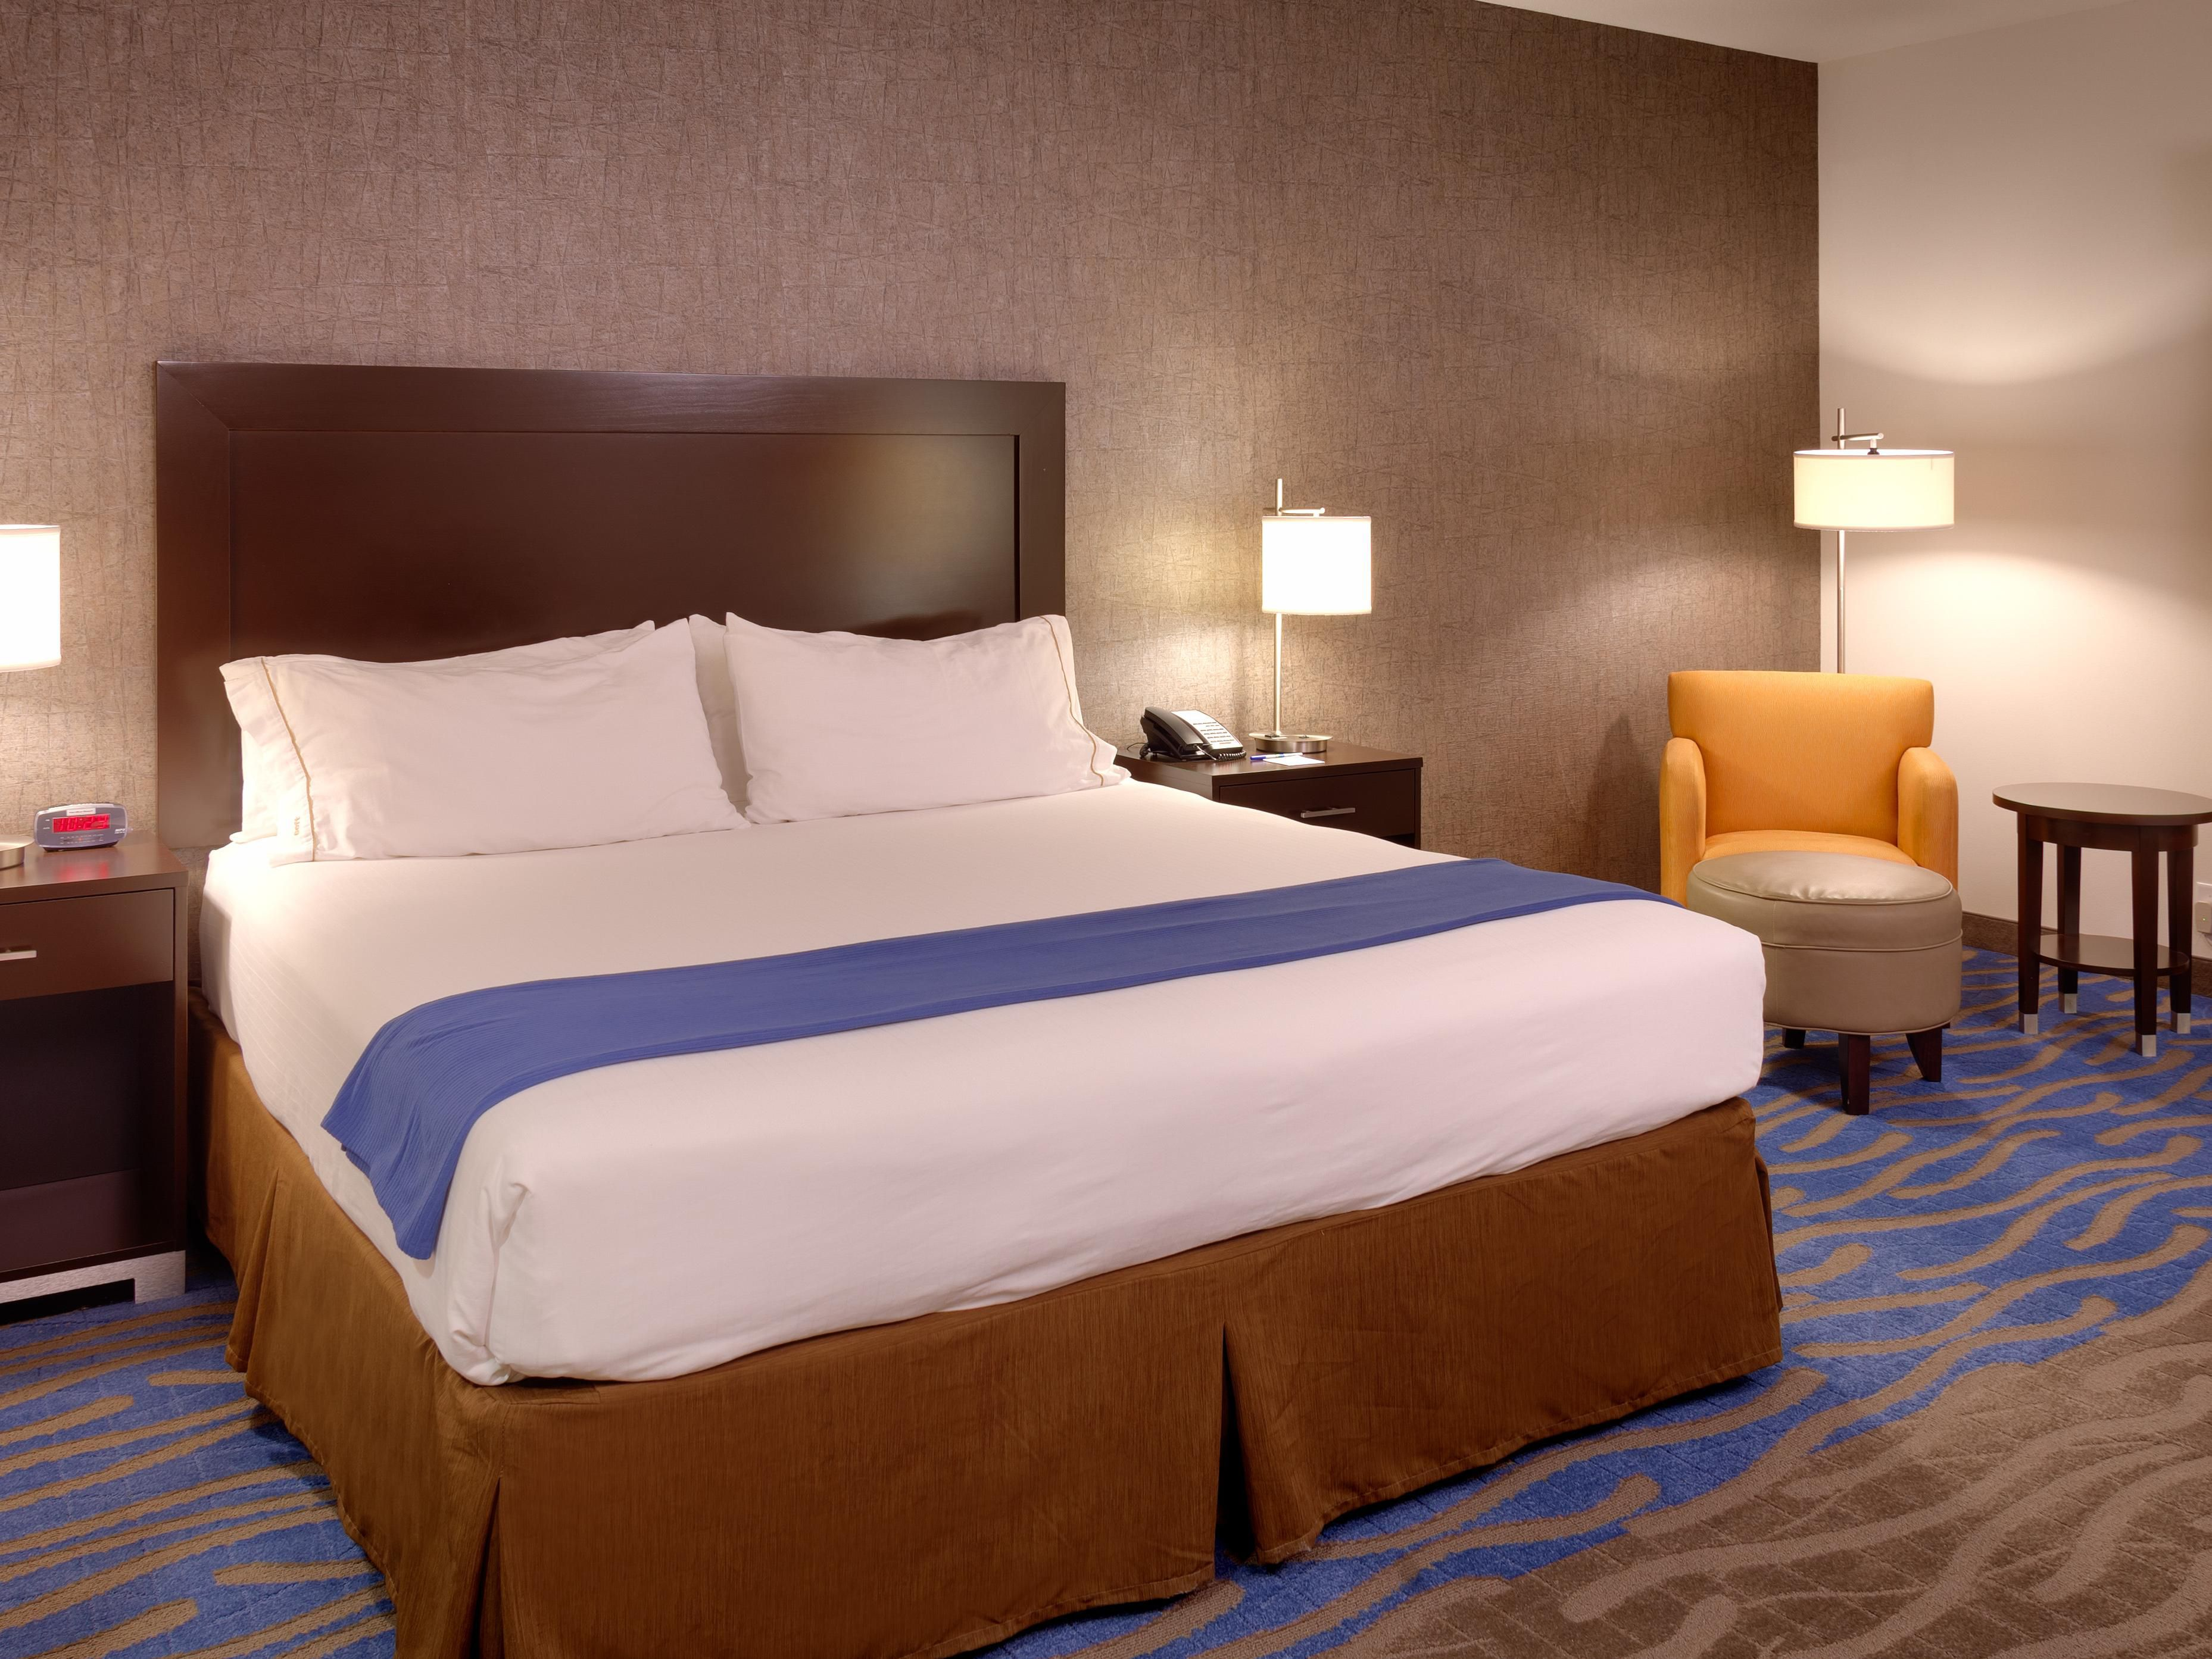 Executive King Room-Holiday Inn Express & Suites, Overland Park,KS